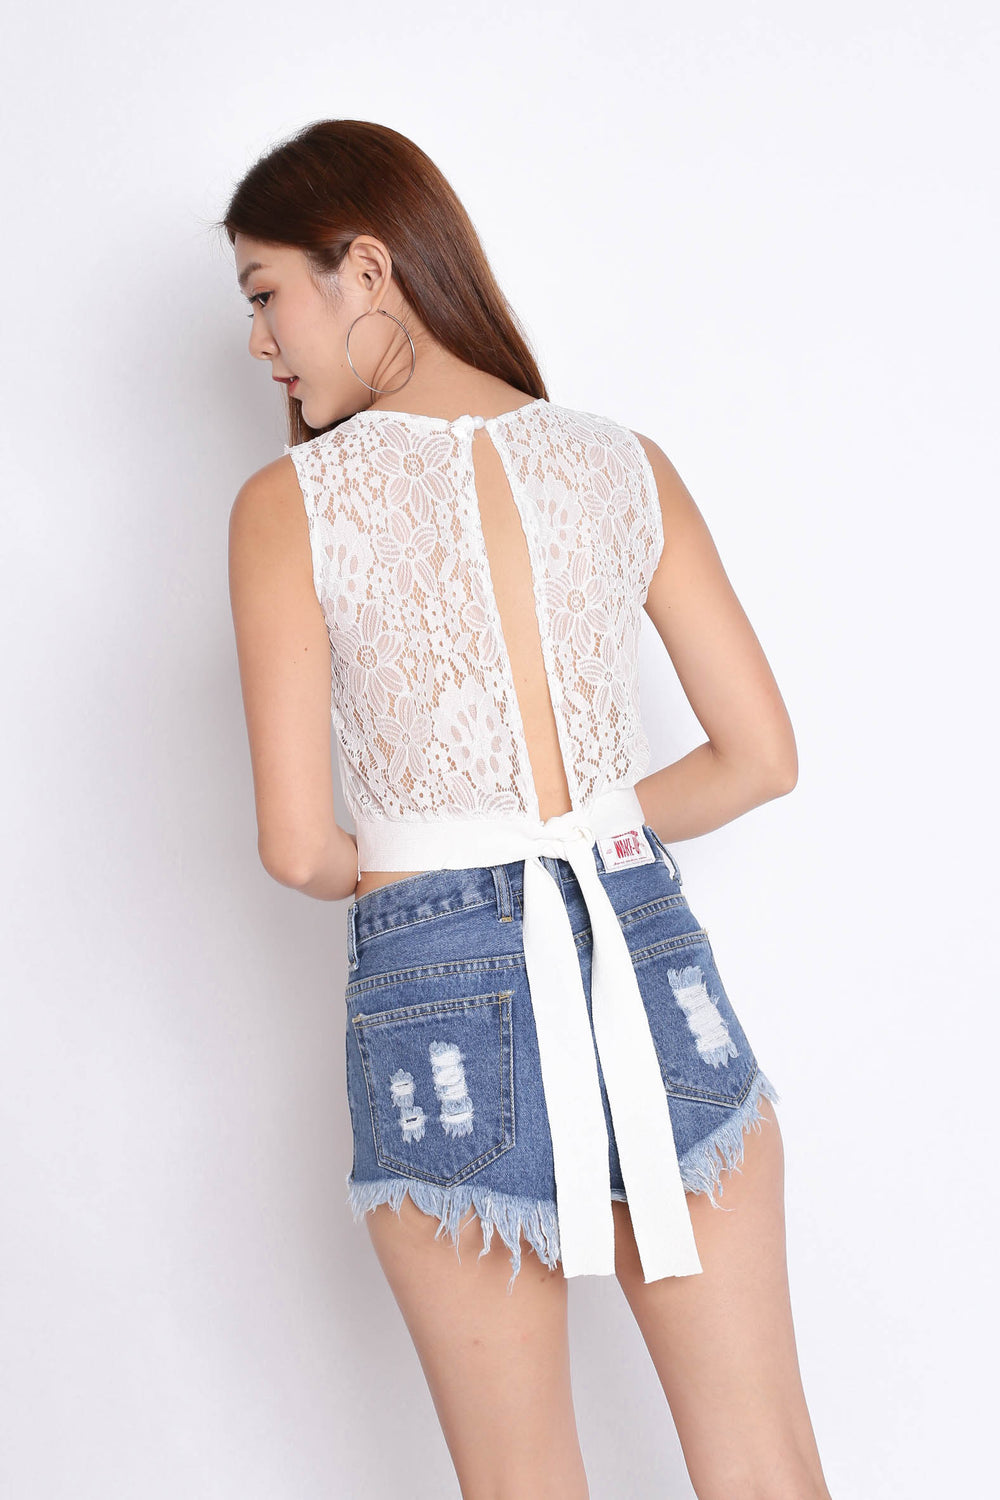 XANDRIA OPEN BACK LACE KNIT TOP IN WHITE